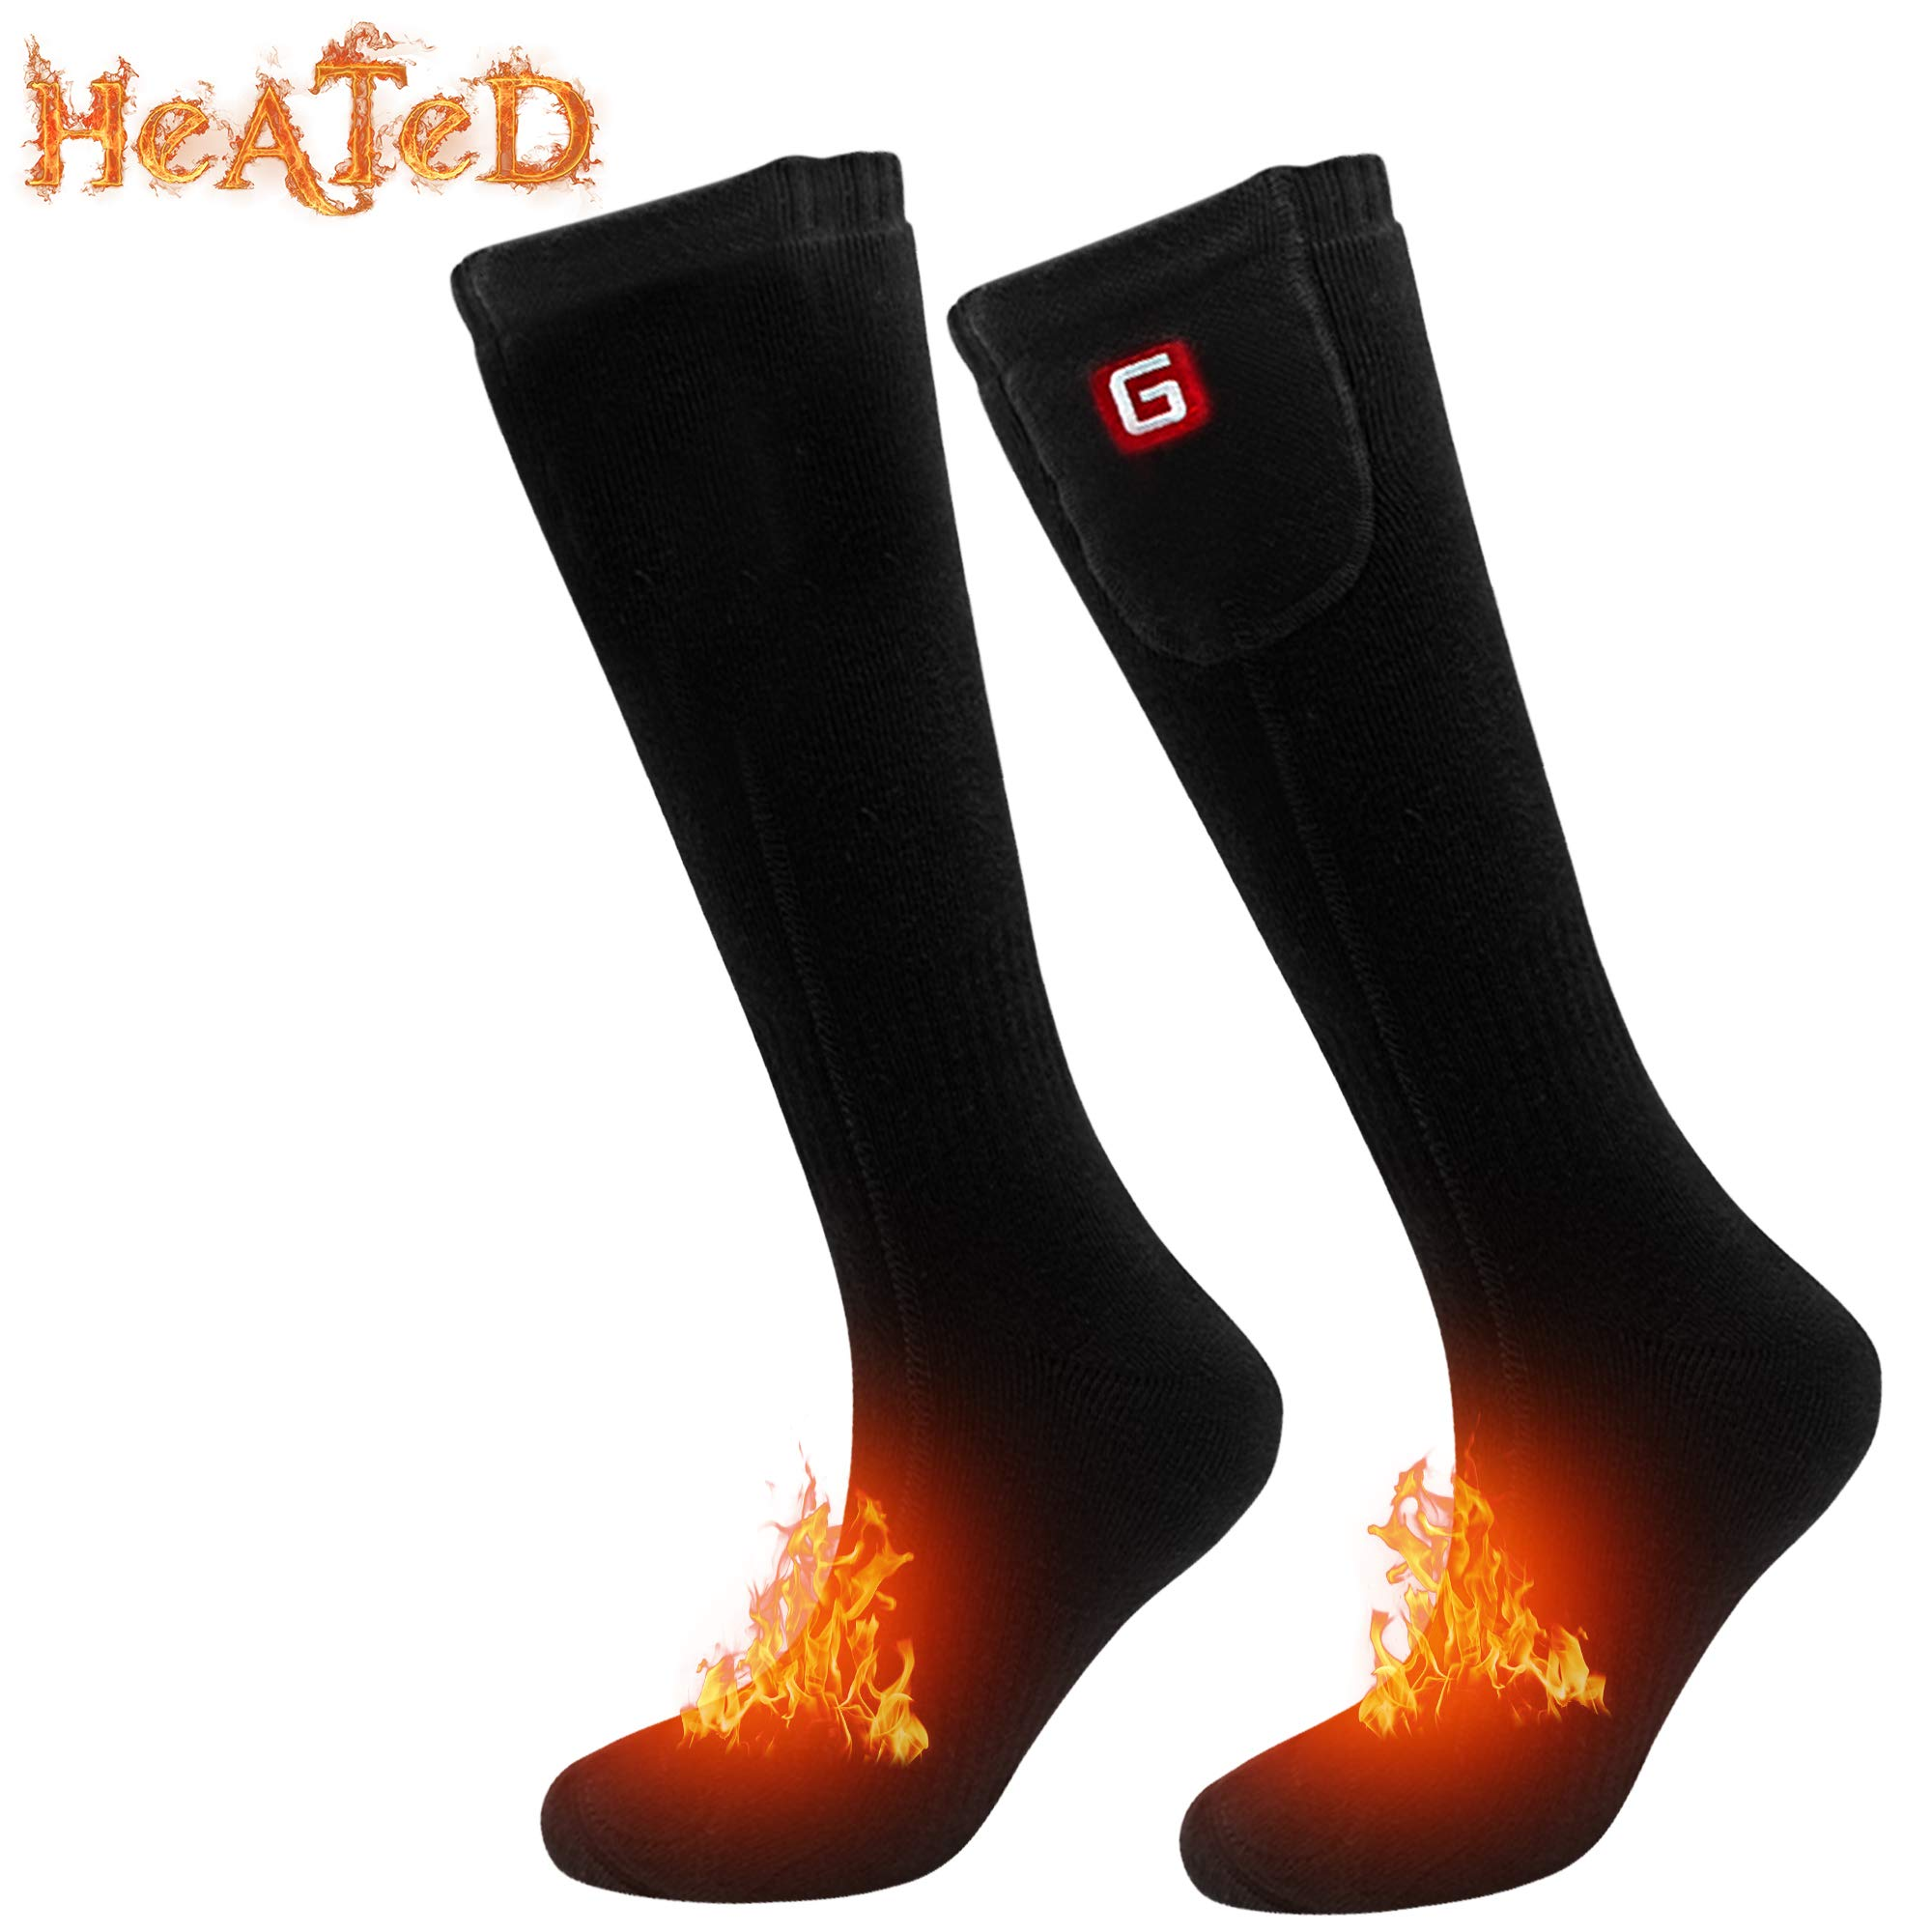 Greensha Electric Heated Socks,Battery Powered Electric Heating Socks for Men&Women,Indoor Outdoors Sports Thermal Socks,Winter Rechargeable Heated Socks for Chronically Cold Feet by Greensha